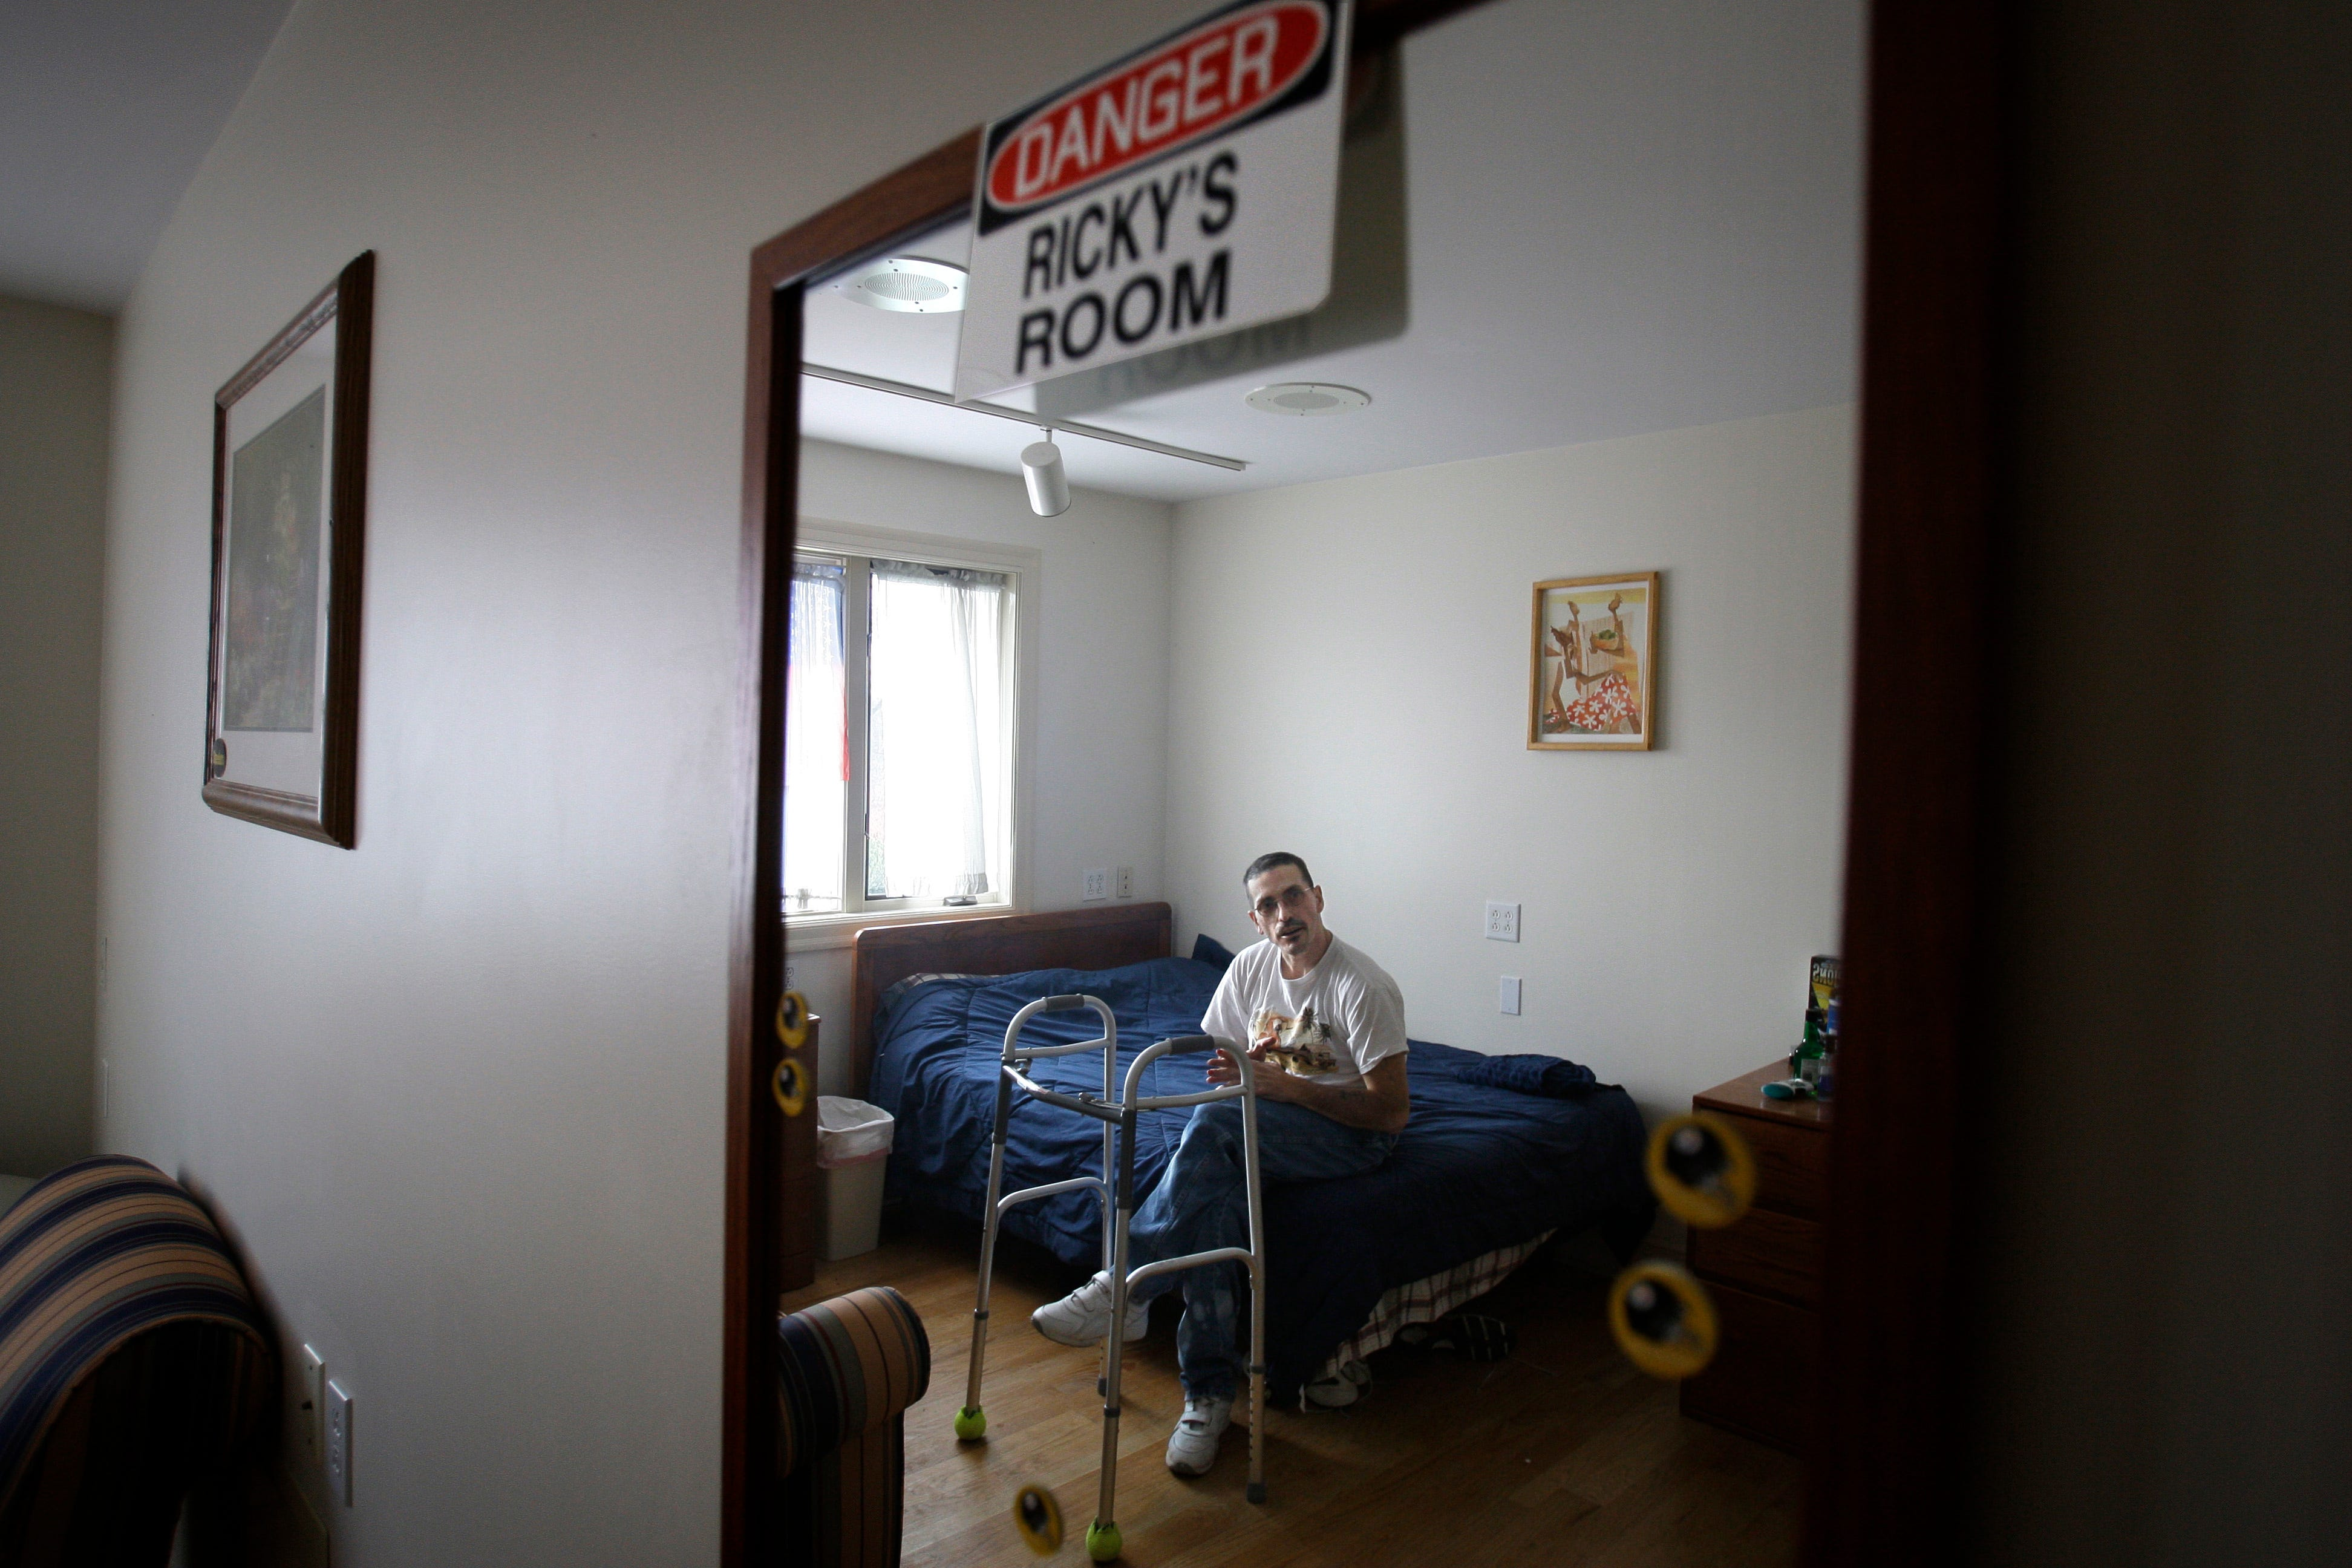 Rickie Ullmon was a longtime resident of Mayview State Hospital in Pennsylvania, with little hope of ever being released. But after the hospital closed in 2008, nearly all residents were placed in housing in the community. In this photo from 2010, Ullmon shows off his room in a group home.